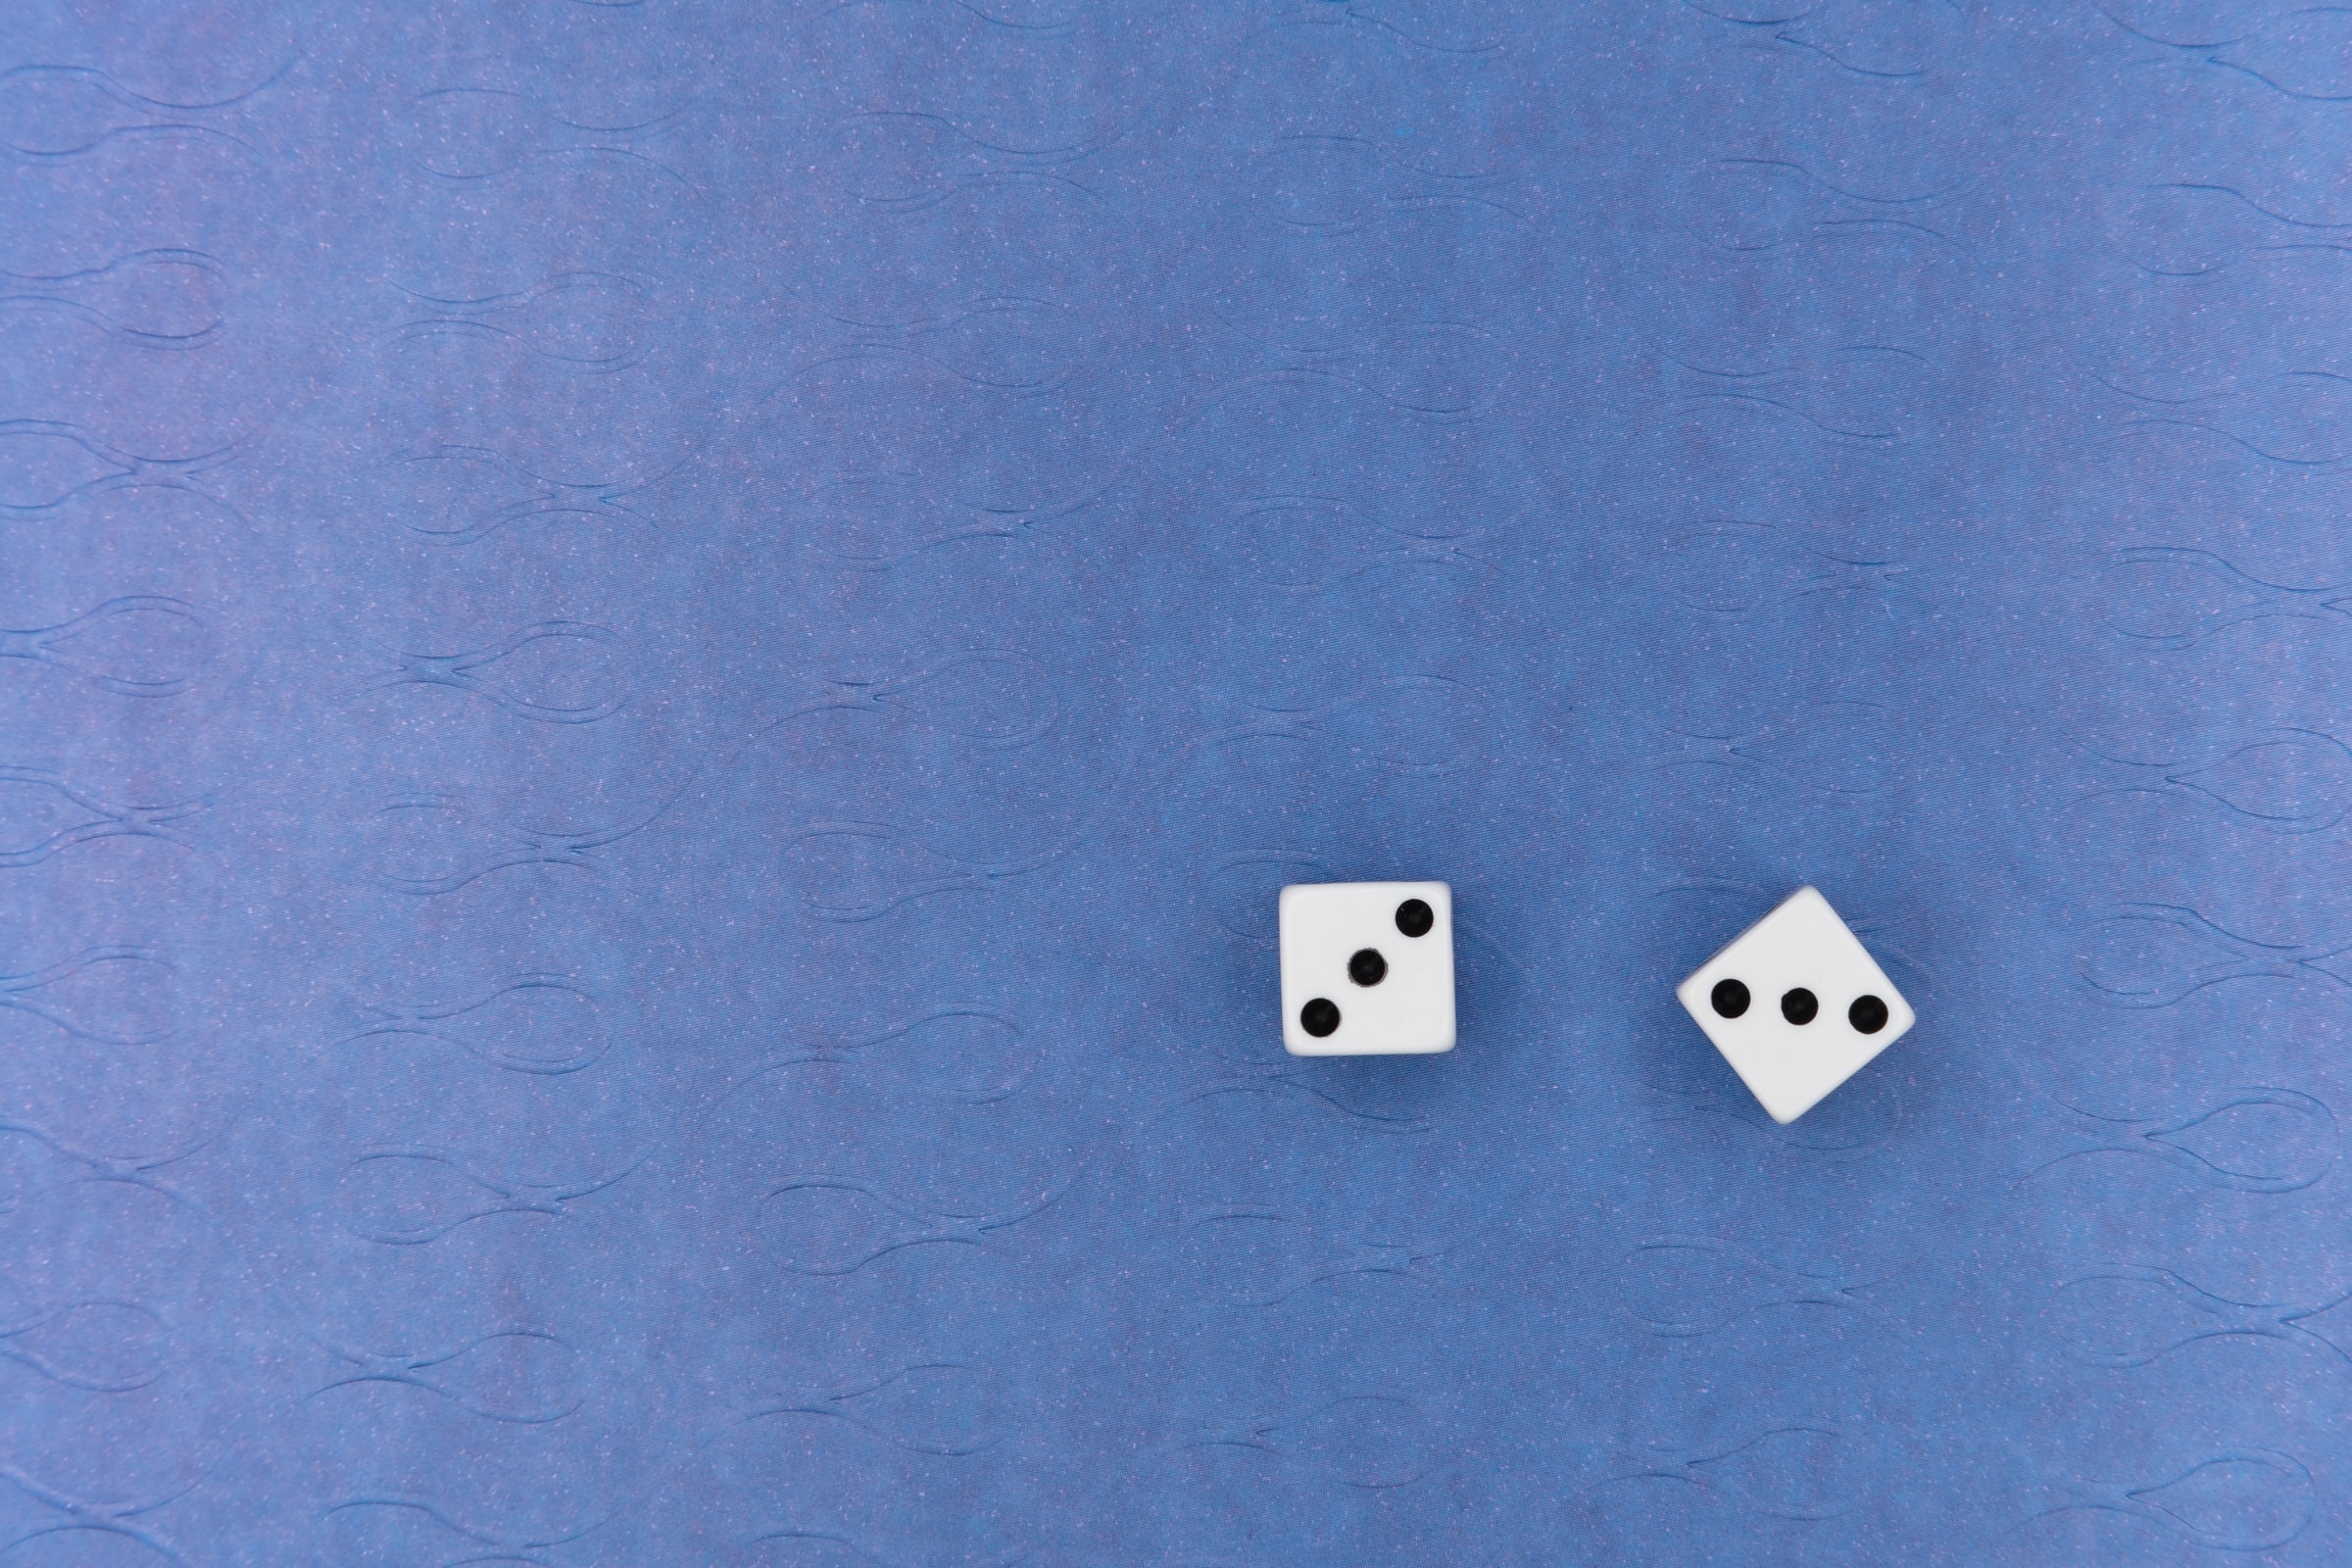 Dices on a blue background   MAP Lawyers